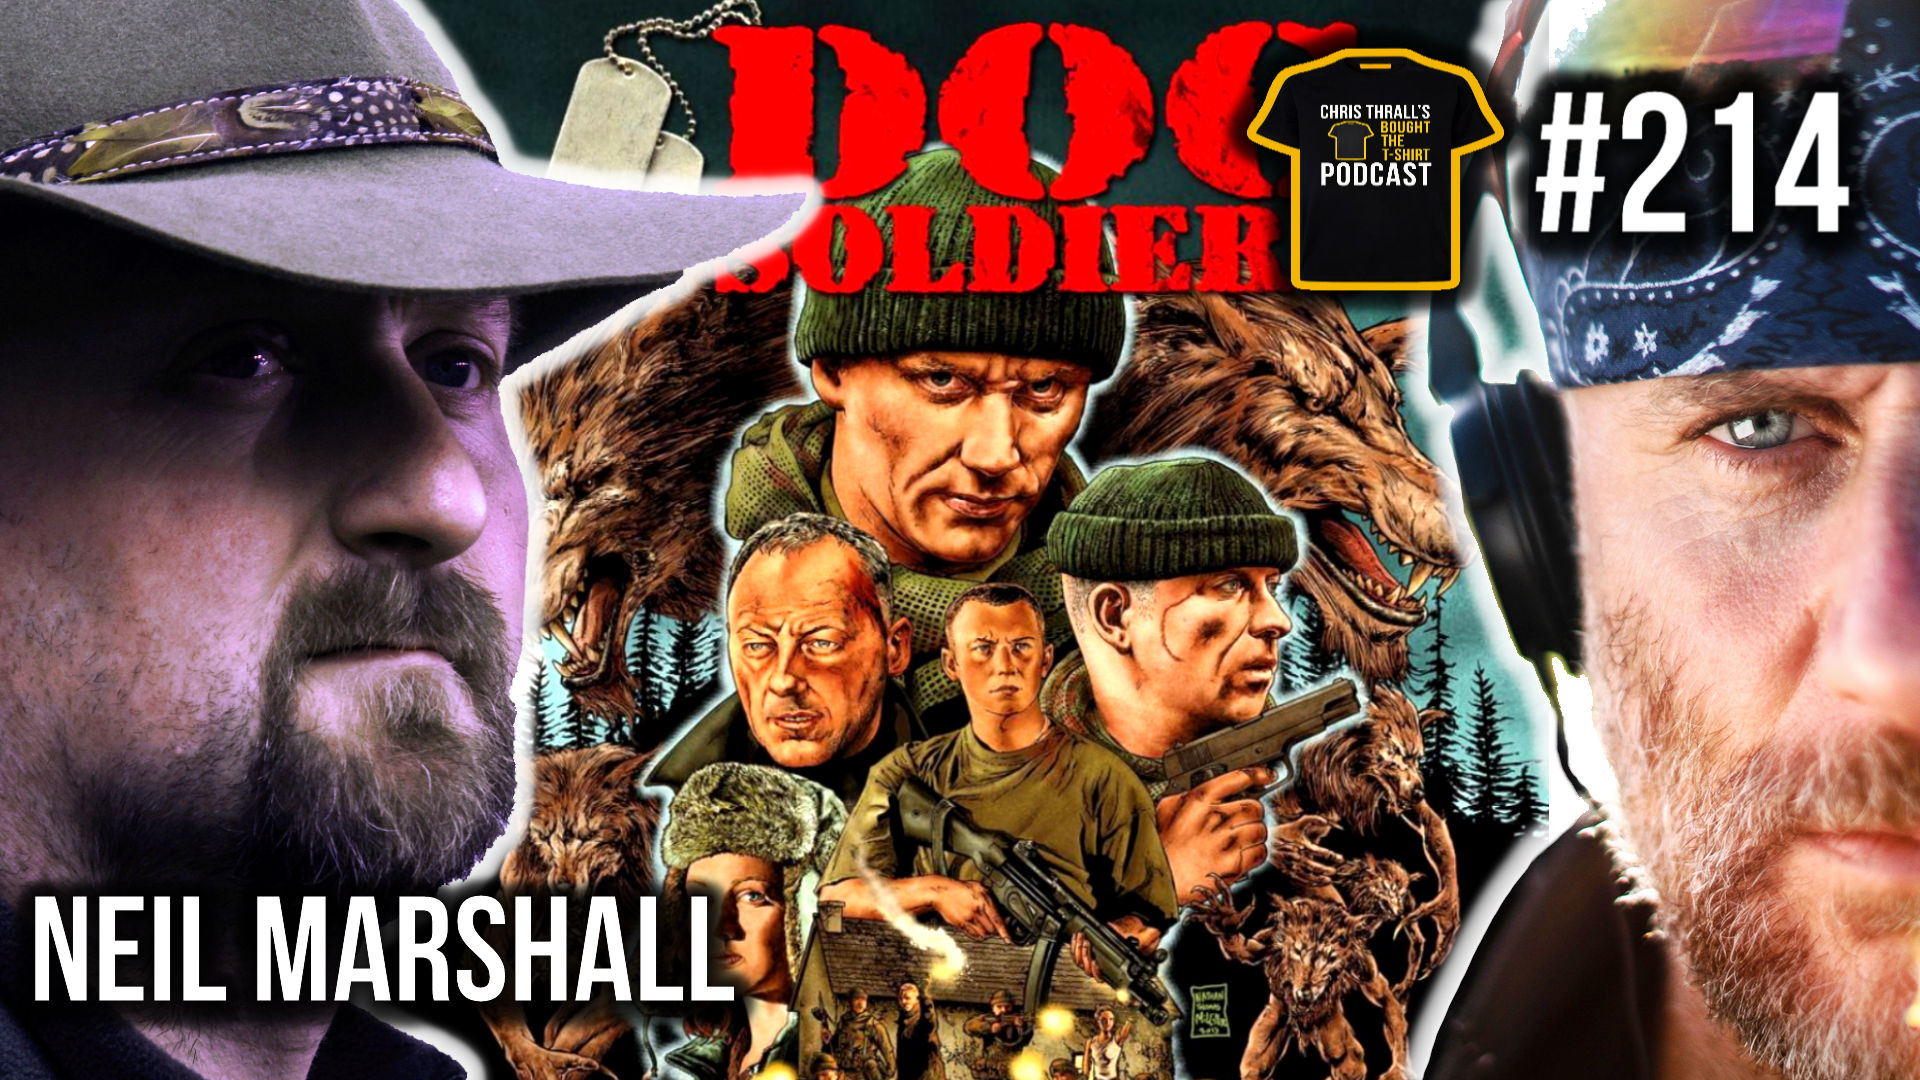 Dog Soldiers A British Army Classic | Bought The T-Shirt Podcast #214